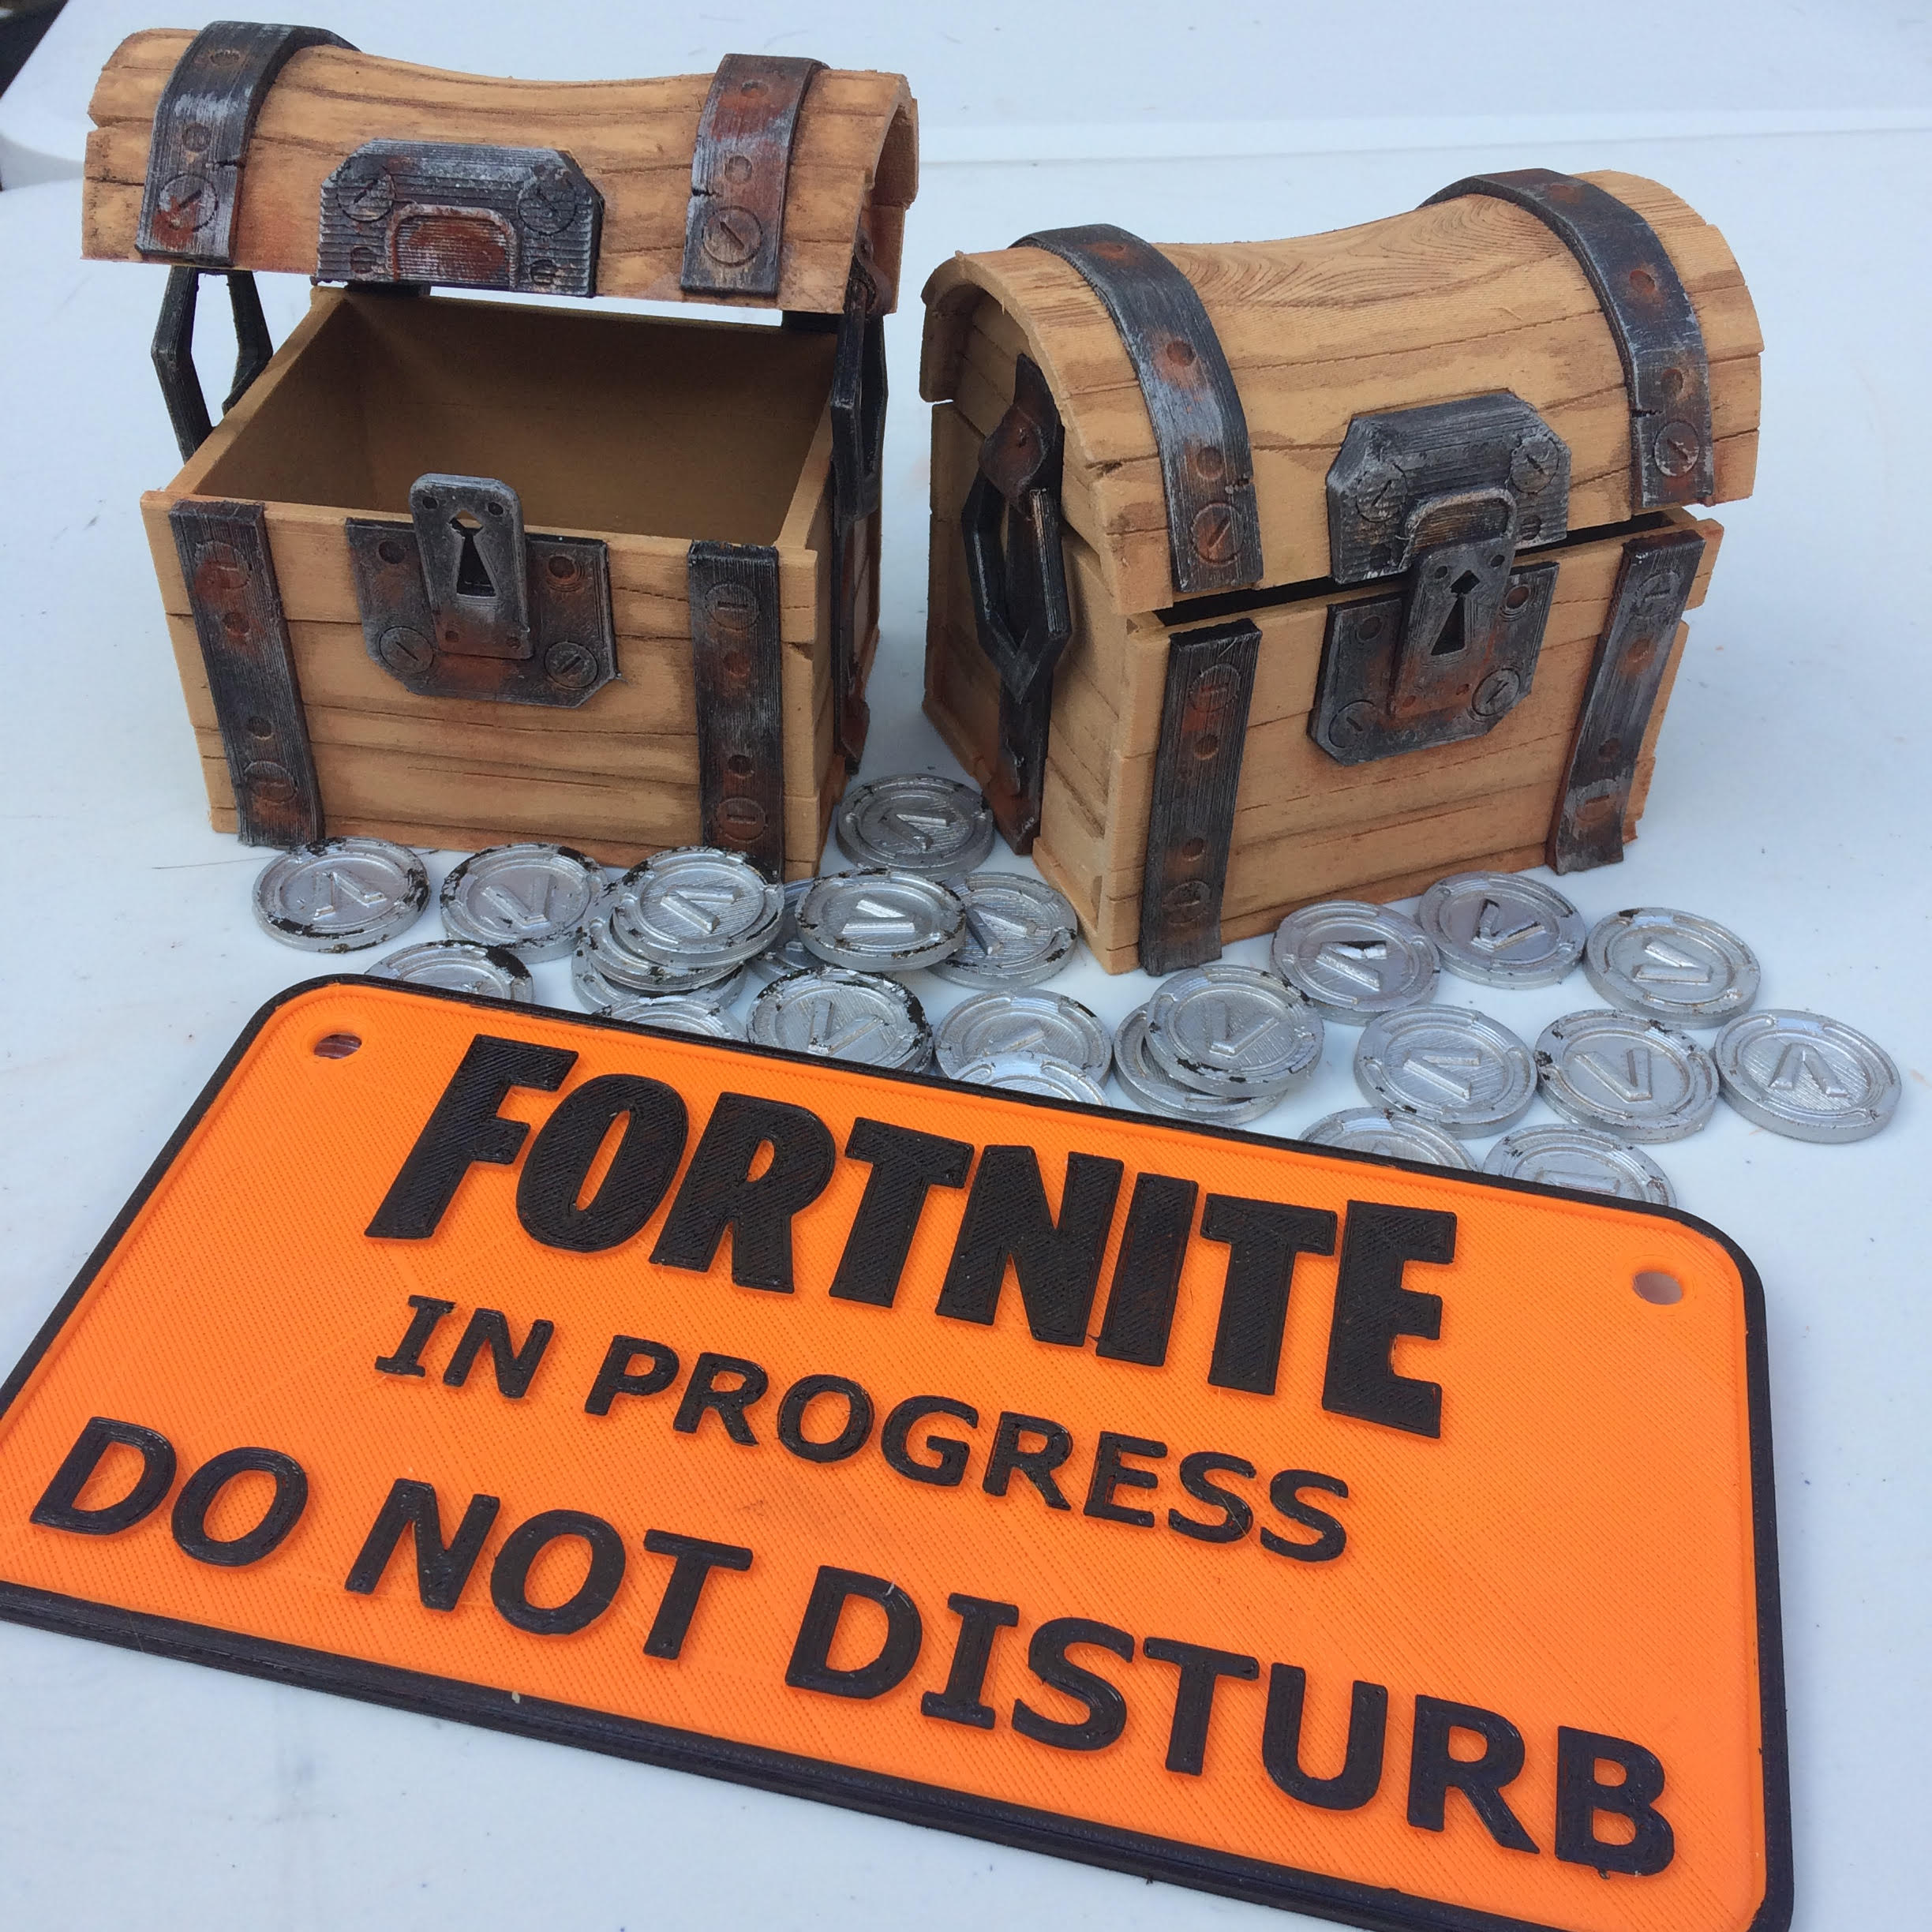 Thingiverse Fortnite Chest Makes Of Fortnite Chest By Vgl74 Thingiverse